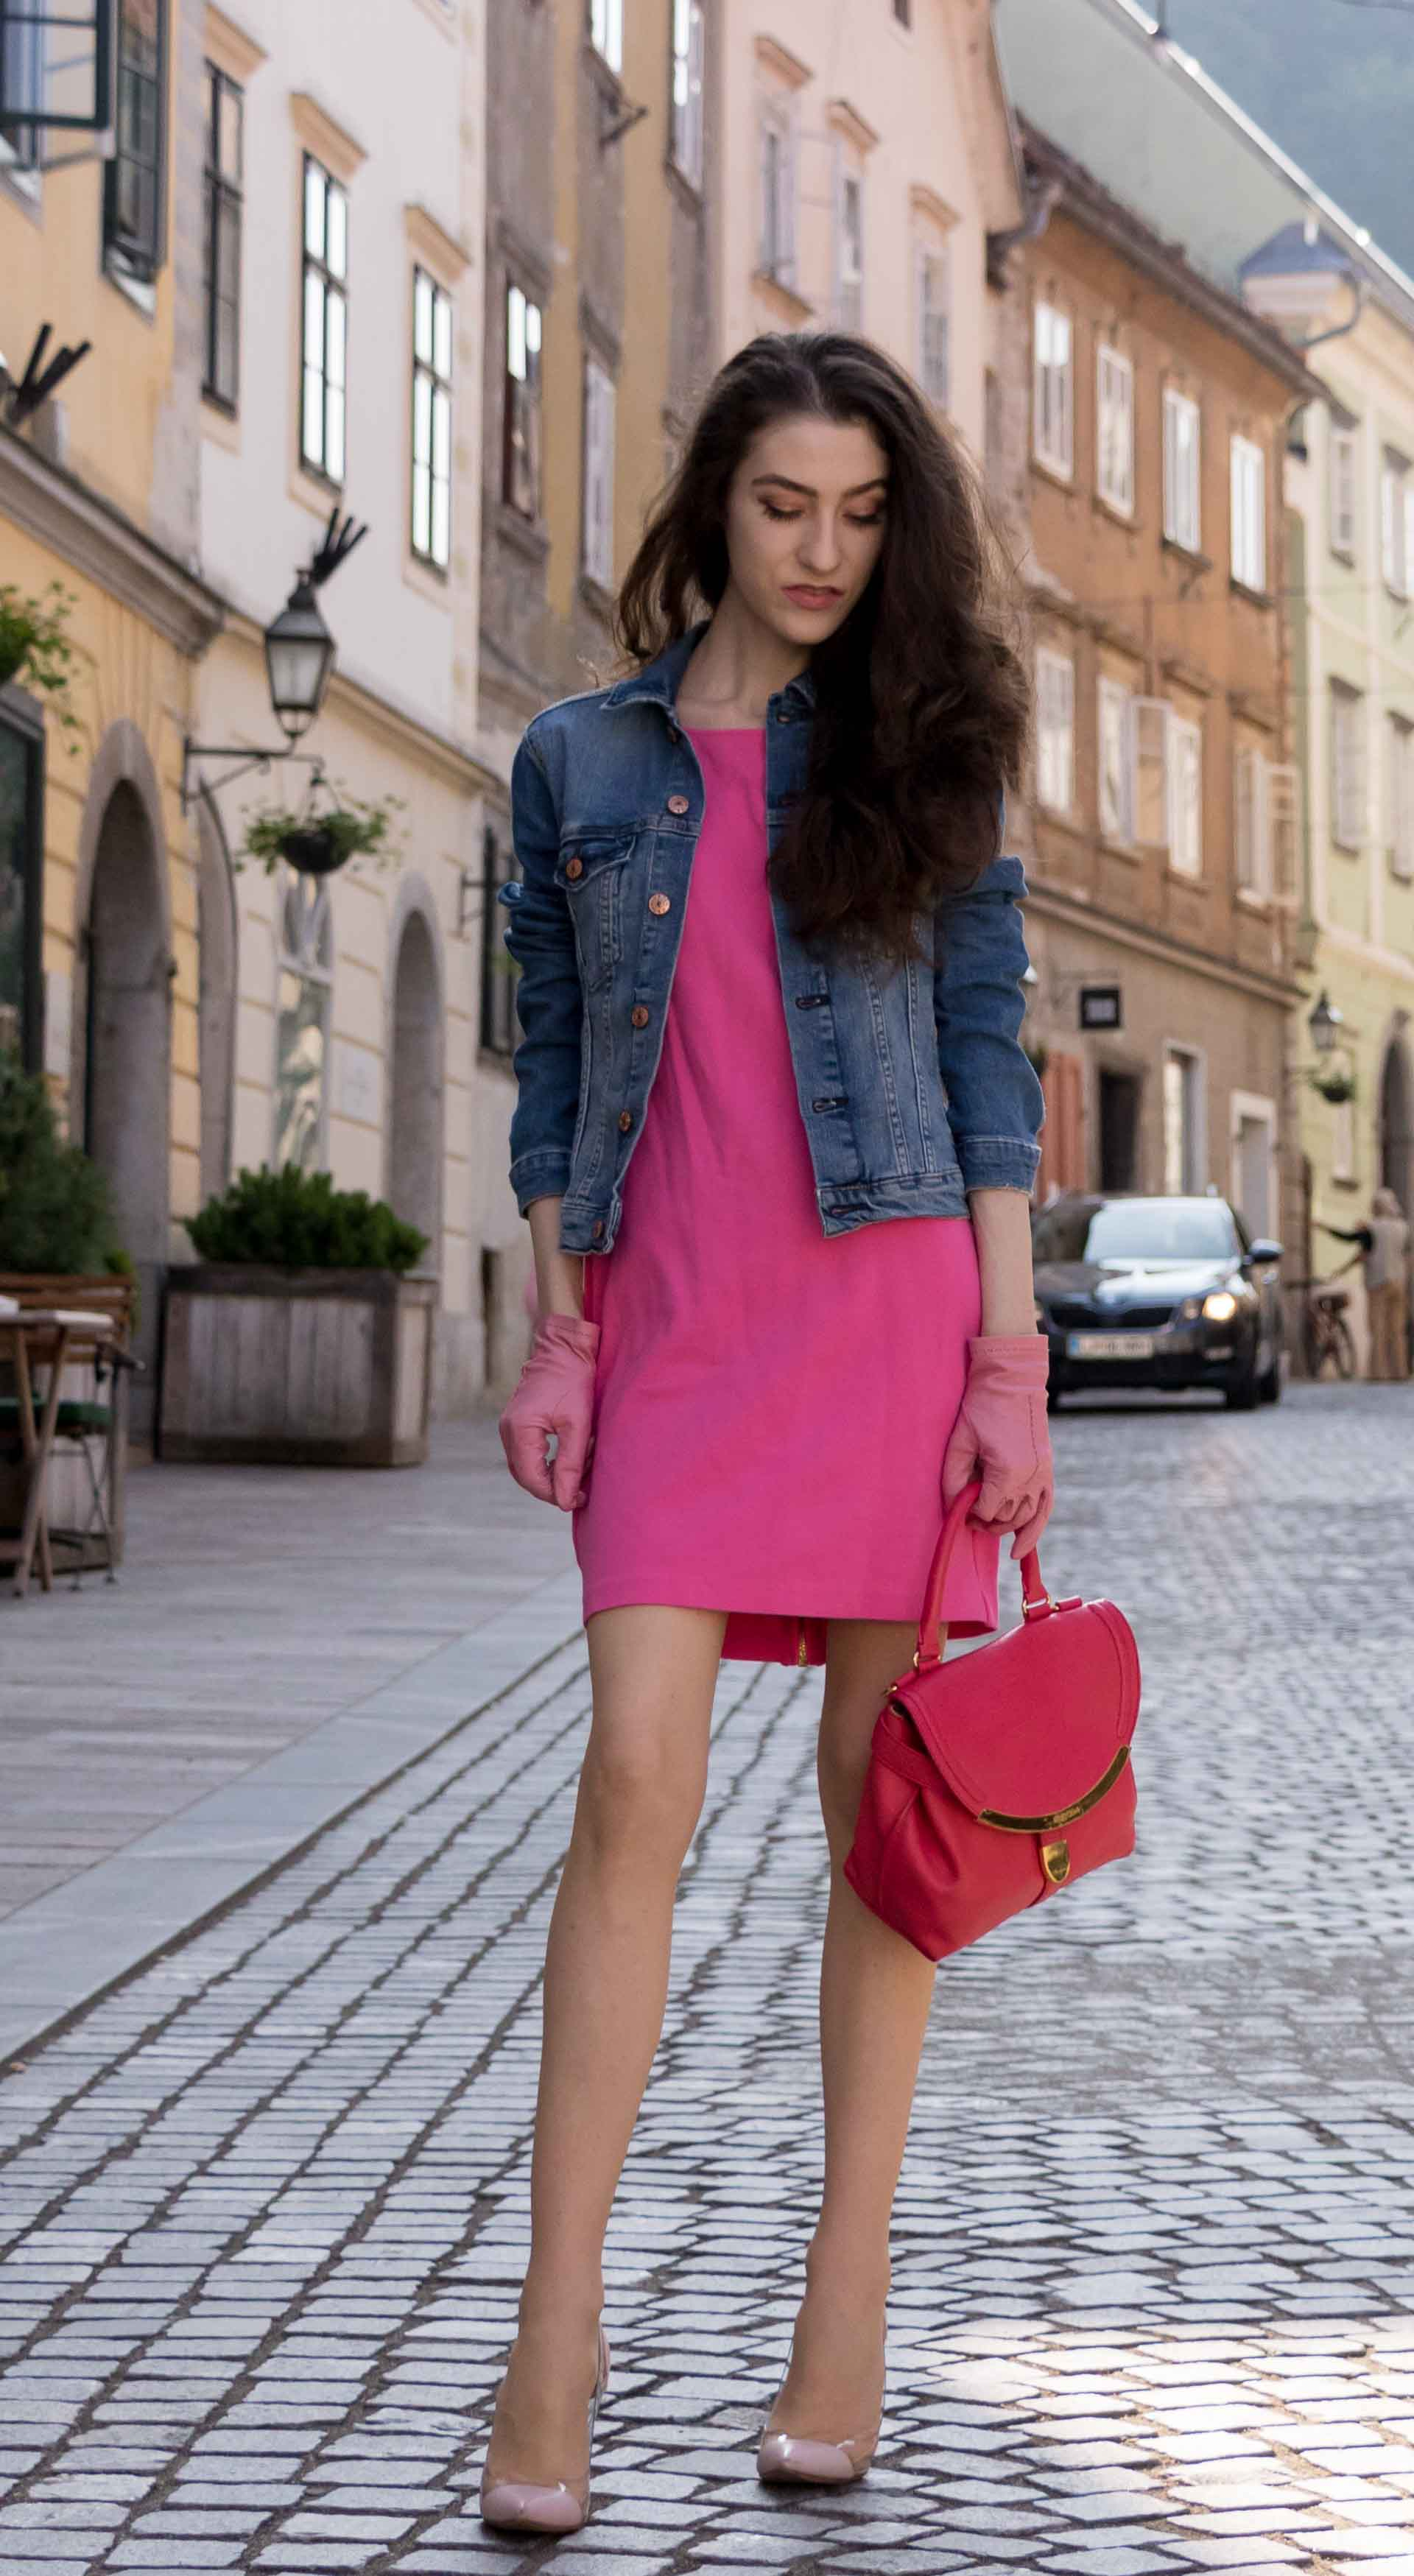 Veronika Lipar Fashion Blogger of Brunette from Wall Street dressed in H&M denim jacket, pink summer dress, blush Gianvito Rossi plexi pumps, pink Forzieri gloves, See by Chloé pink top handle bag, Adam Selman x Le Specs white cat eye Lolita sunglasses while standing on the street in Ljubljana